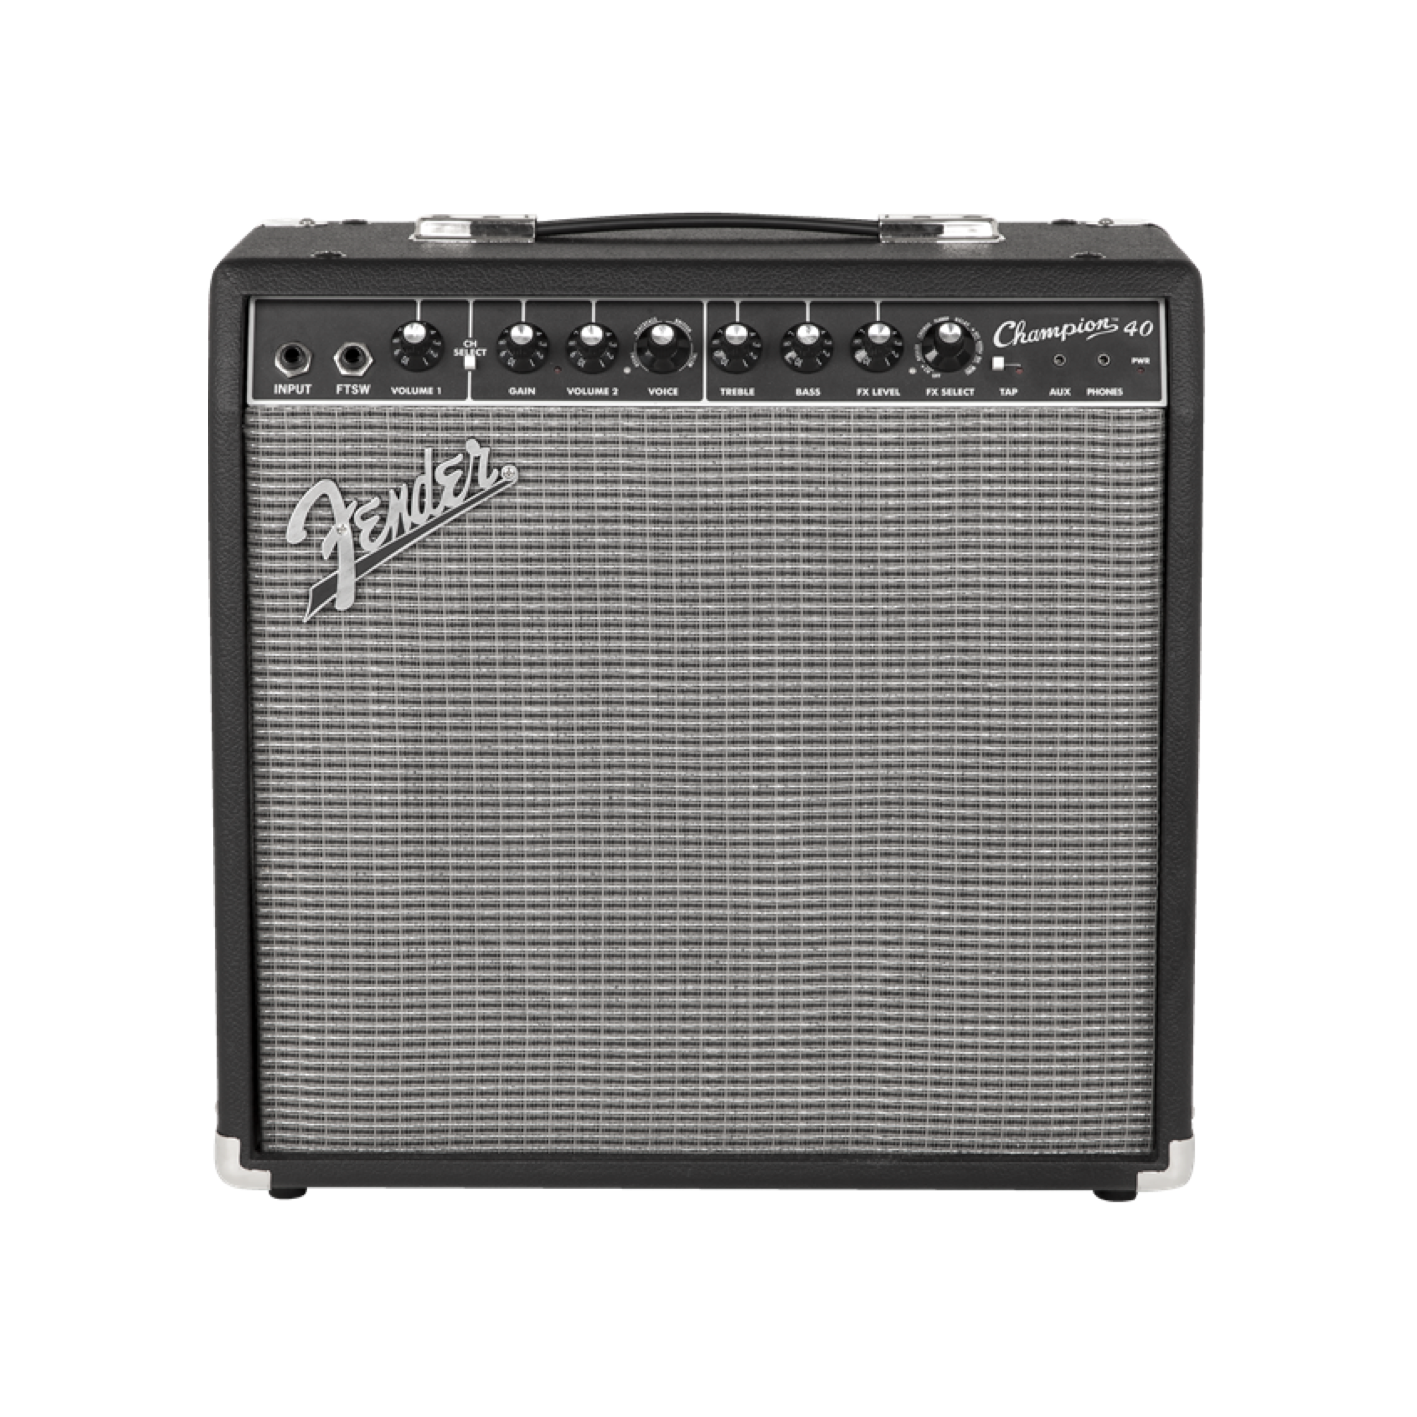 Fender Champ 40 40w Guitar Amp